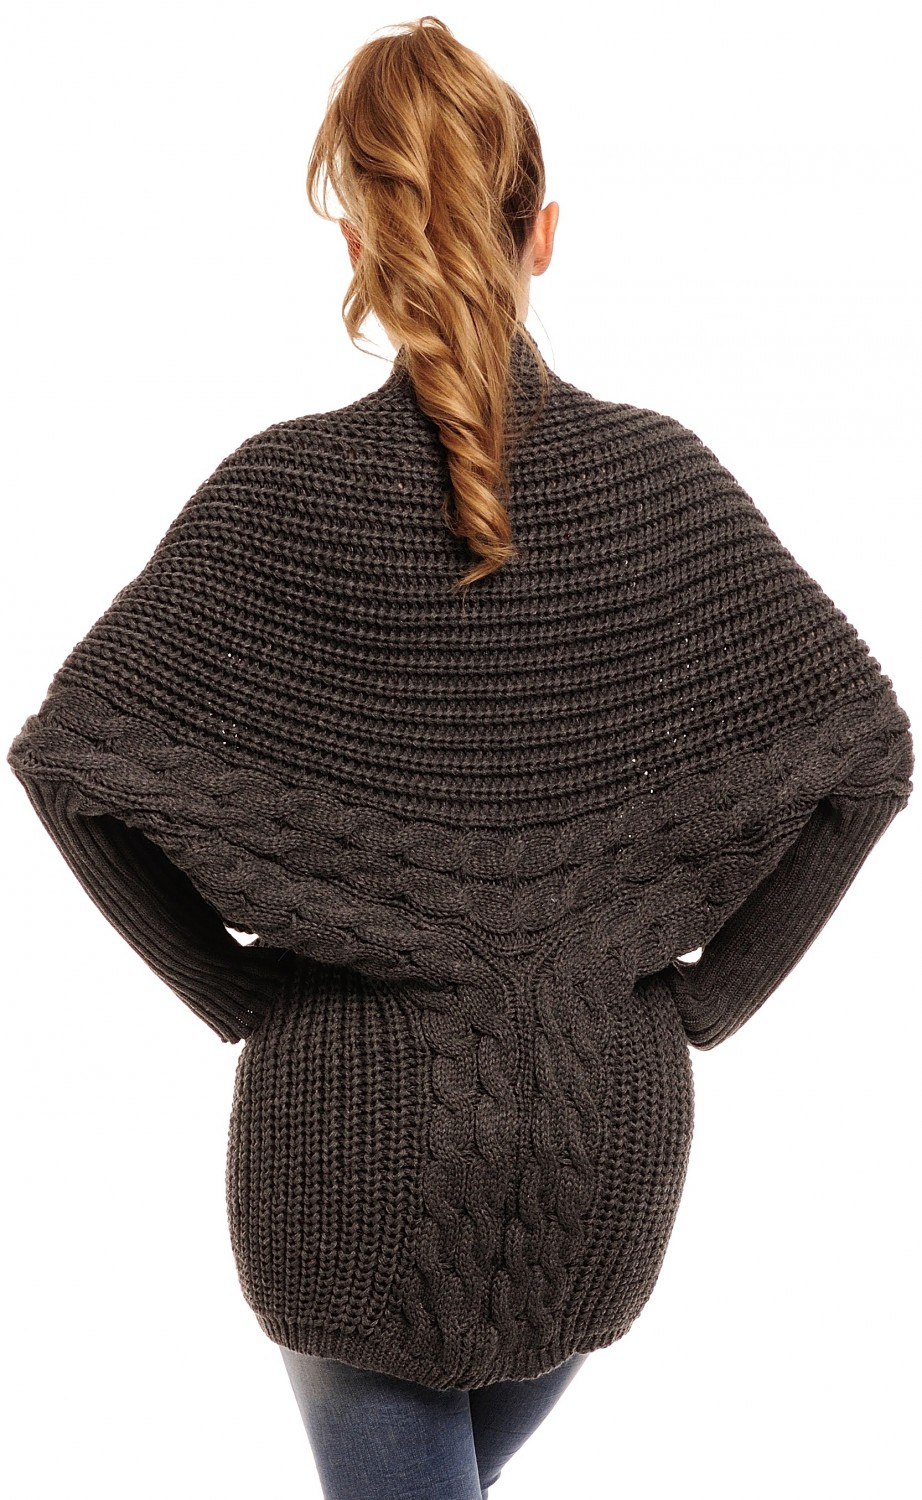 Glamour-Empire-Women-039-s-Long-Sleeve-Batwing-Knitted-Cardigan-329